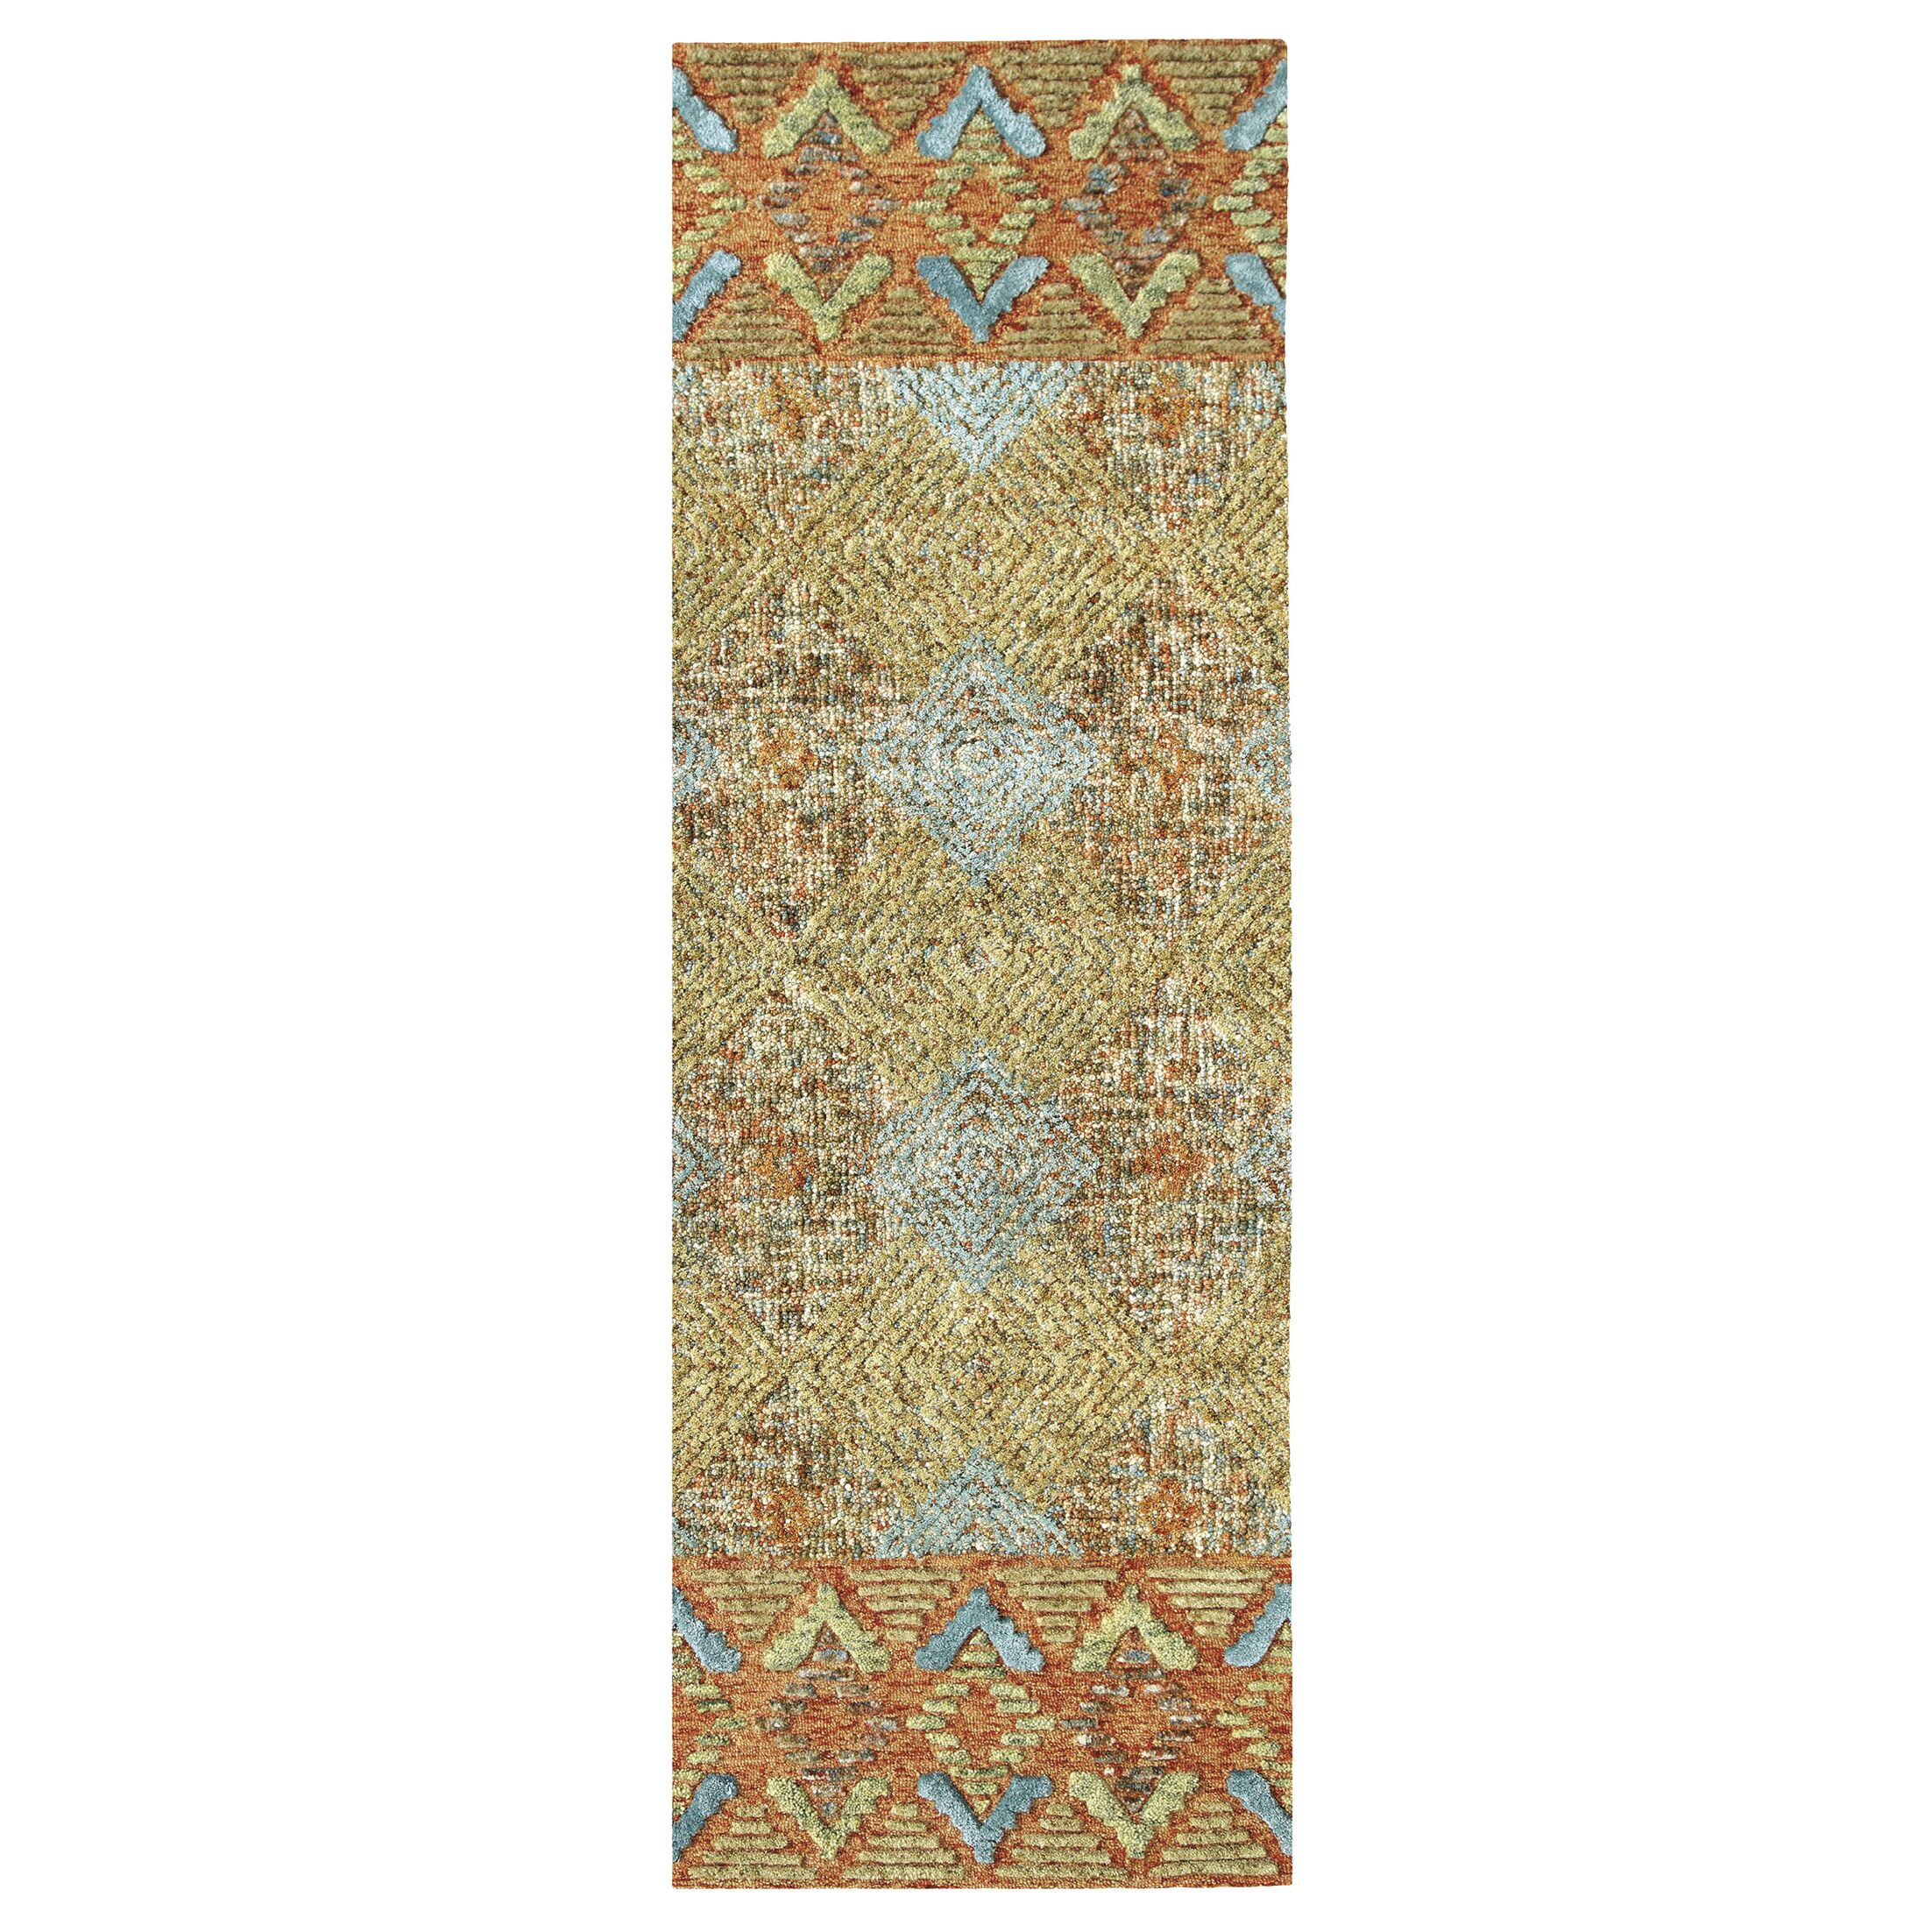 Canyon Hand-Tufted Wool Terracotta Area Rug Rug Size: Rectangle 2'6